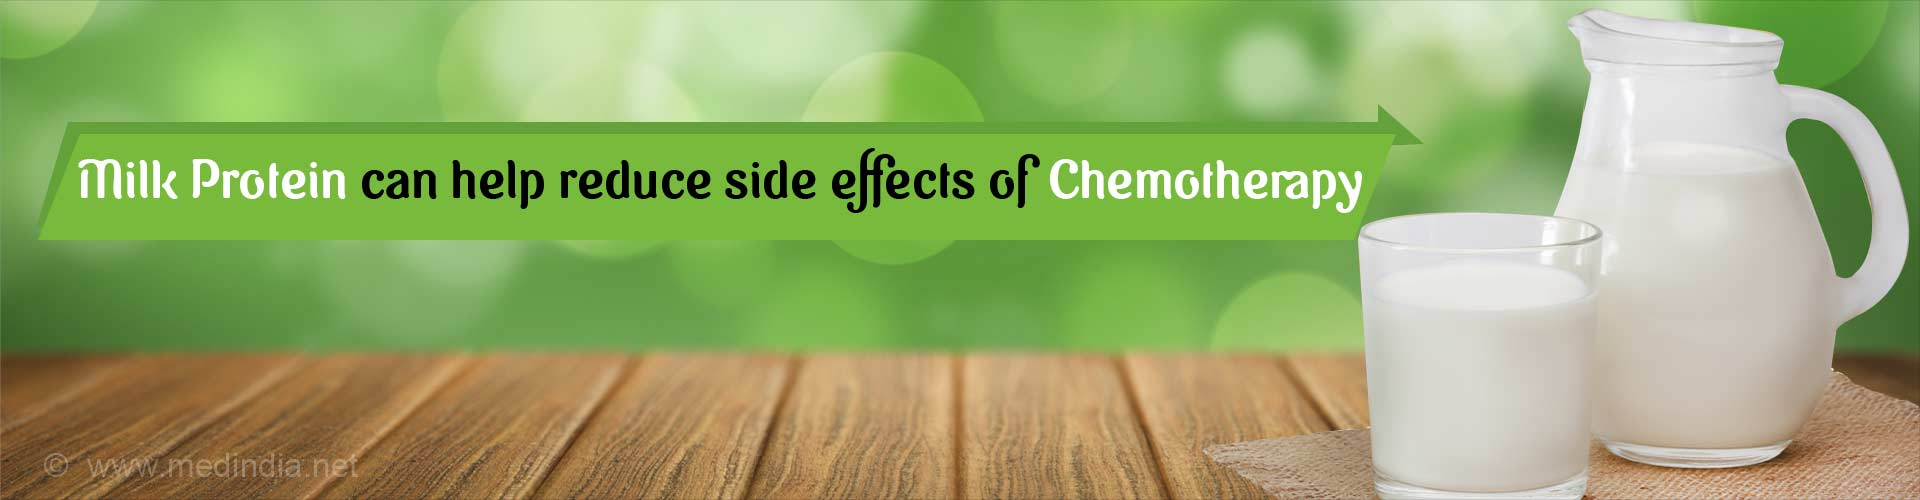 Milk protein can help reduce side effects of chemotherapy.